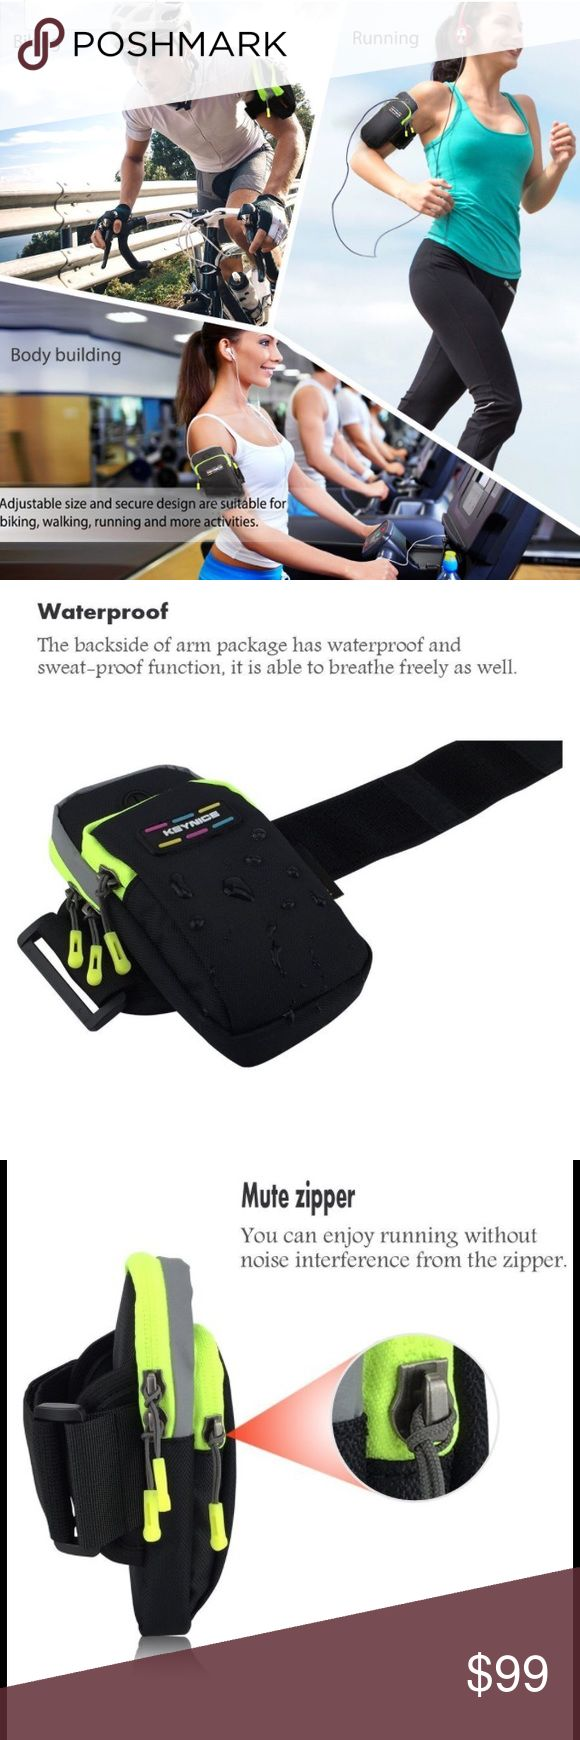 Sports Armband Double Pockets Waterproof Bag Phone • DOUBLE POCKETS -- Convenient for your cellphone, earphone, cable, charger, keys, ID cards, wallet, etc. Waterproof, durable to use & comfy to wear, perfect for sports and outdoor activities • HIGH QUALITY -- Concealed double zippers, fashionable, safe, sturdy, also suit for using earphones.  • FLEXIBLE -- Provide full protection to iPhone 5 6 7 Plus Samsung galaxy note 3 4 5 Nexus 5 Sony Xperia Z4 Z5 and all cellphones less than 5.8 inches…